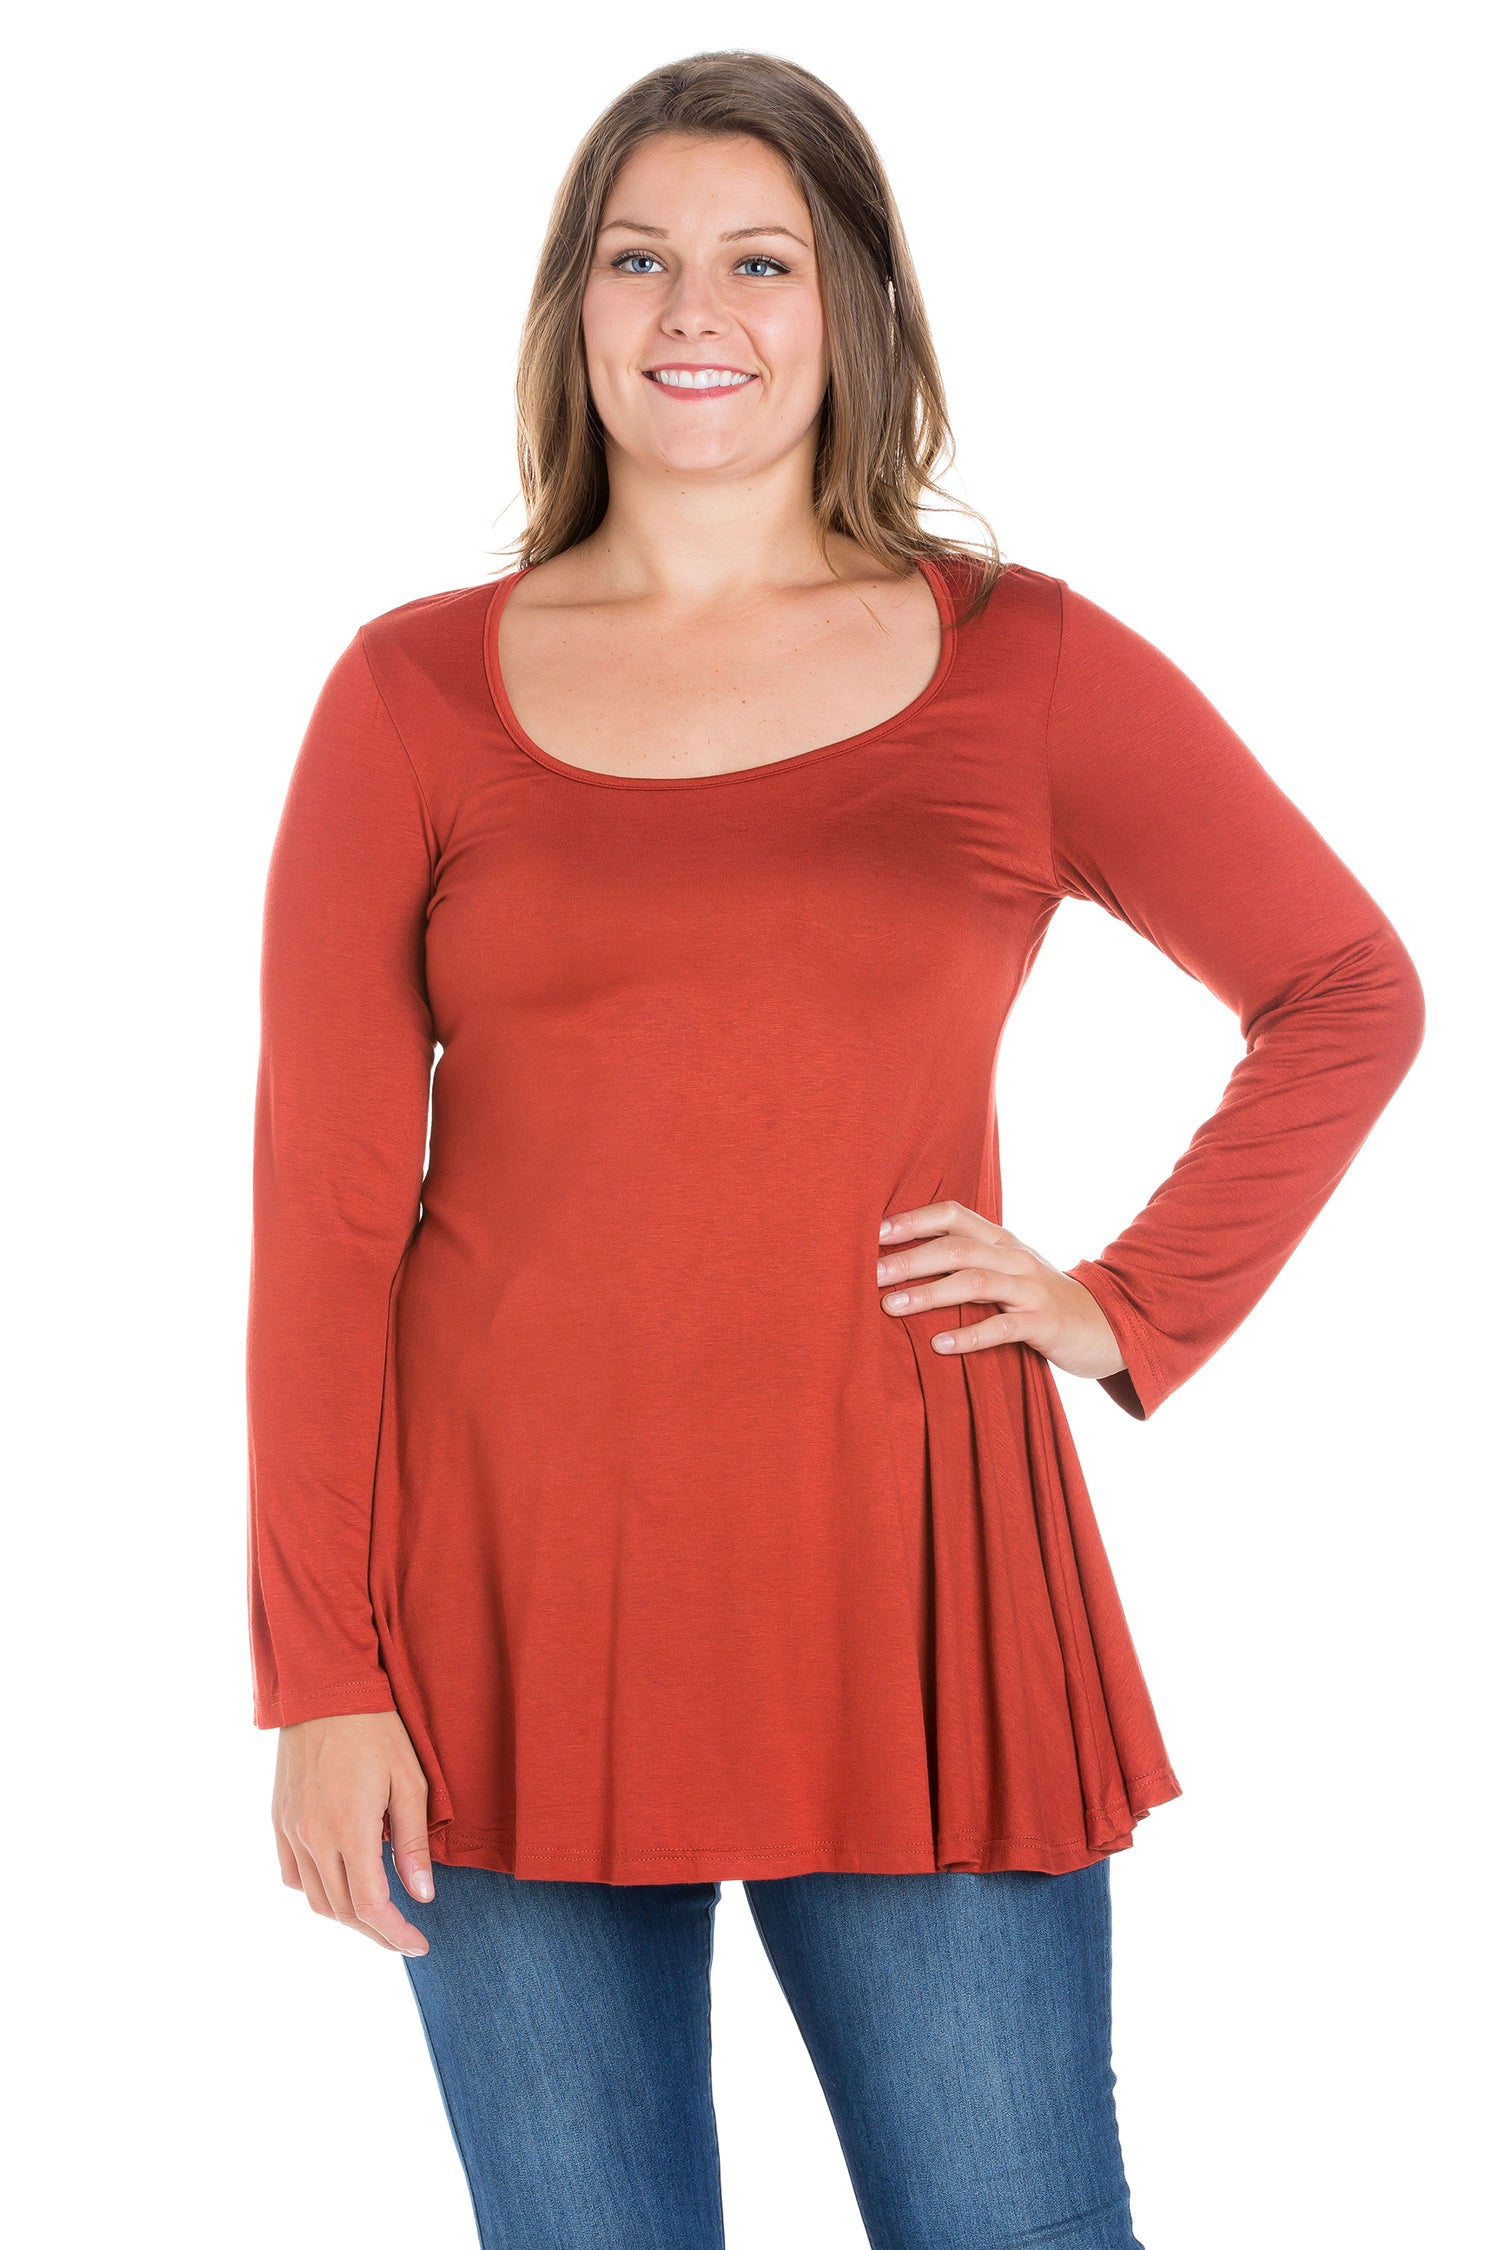 24seven Comfort Apparel Long Sleeve Swing Plus Size Tunic Top-TOPS-24Seven Comfort Apparel-RUST-1X-24/7 Comfort Apparel